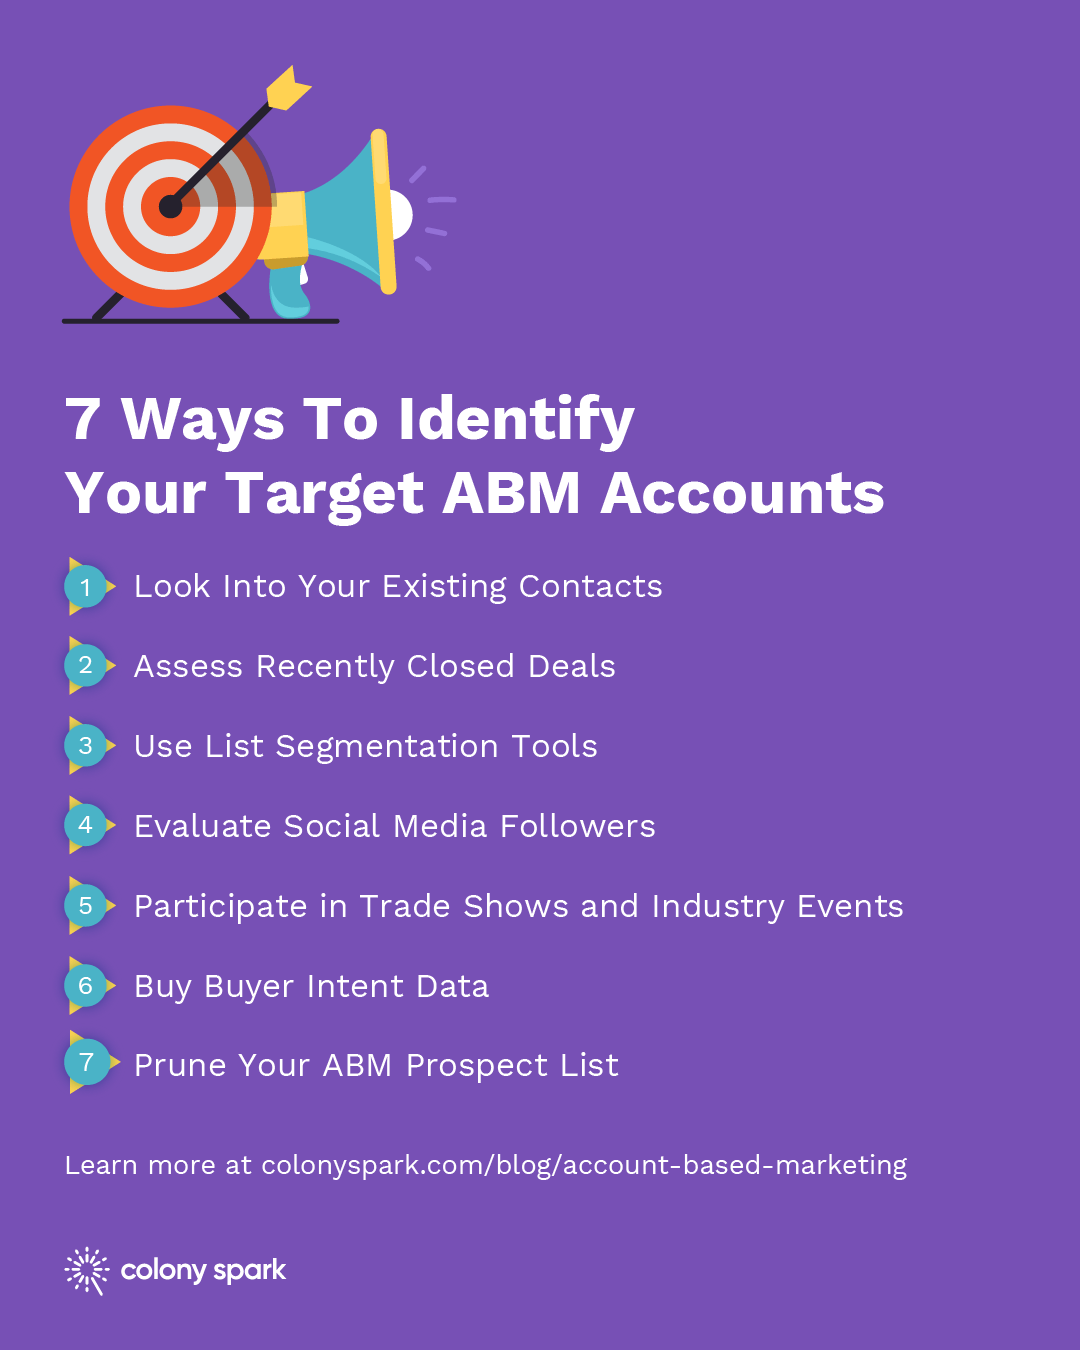 7 Ways To Identify Your Target ABM Accounts